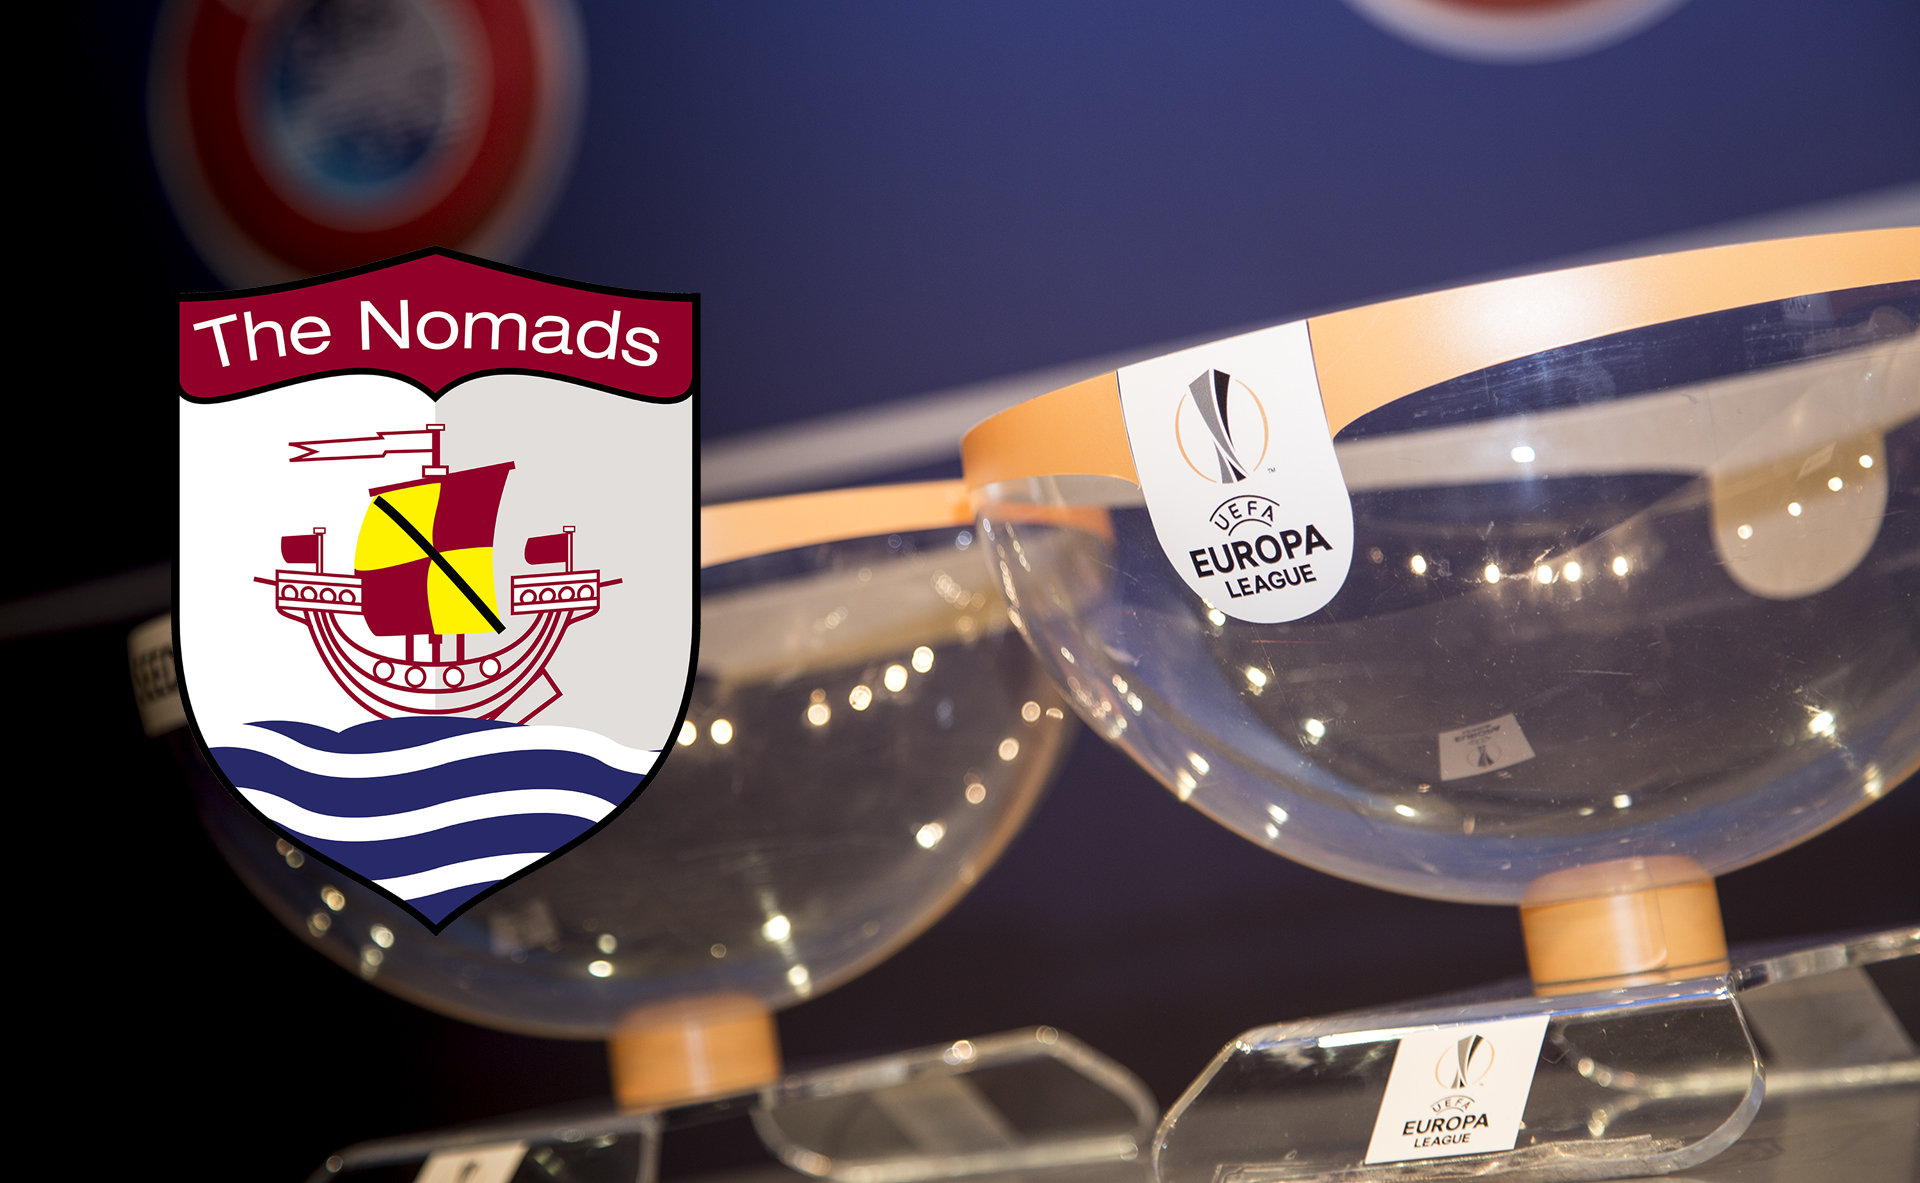 The Nomads will be in the draw in Geneva in June 2017.